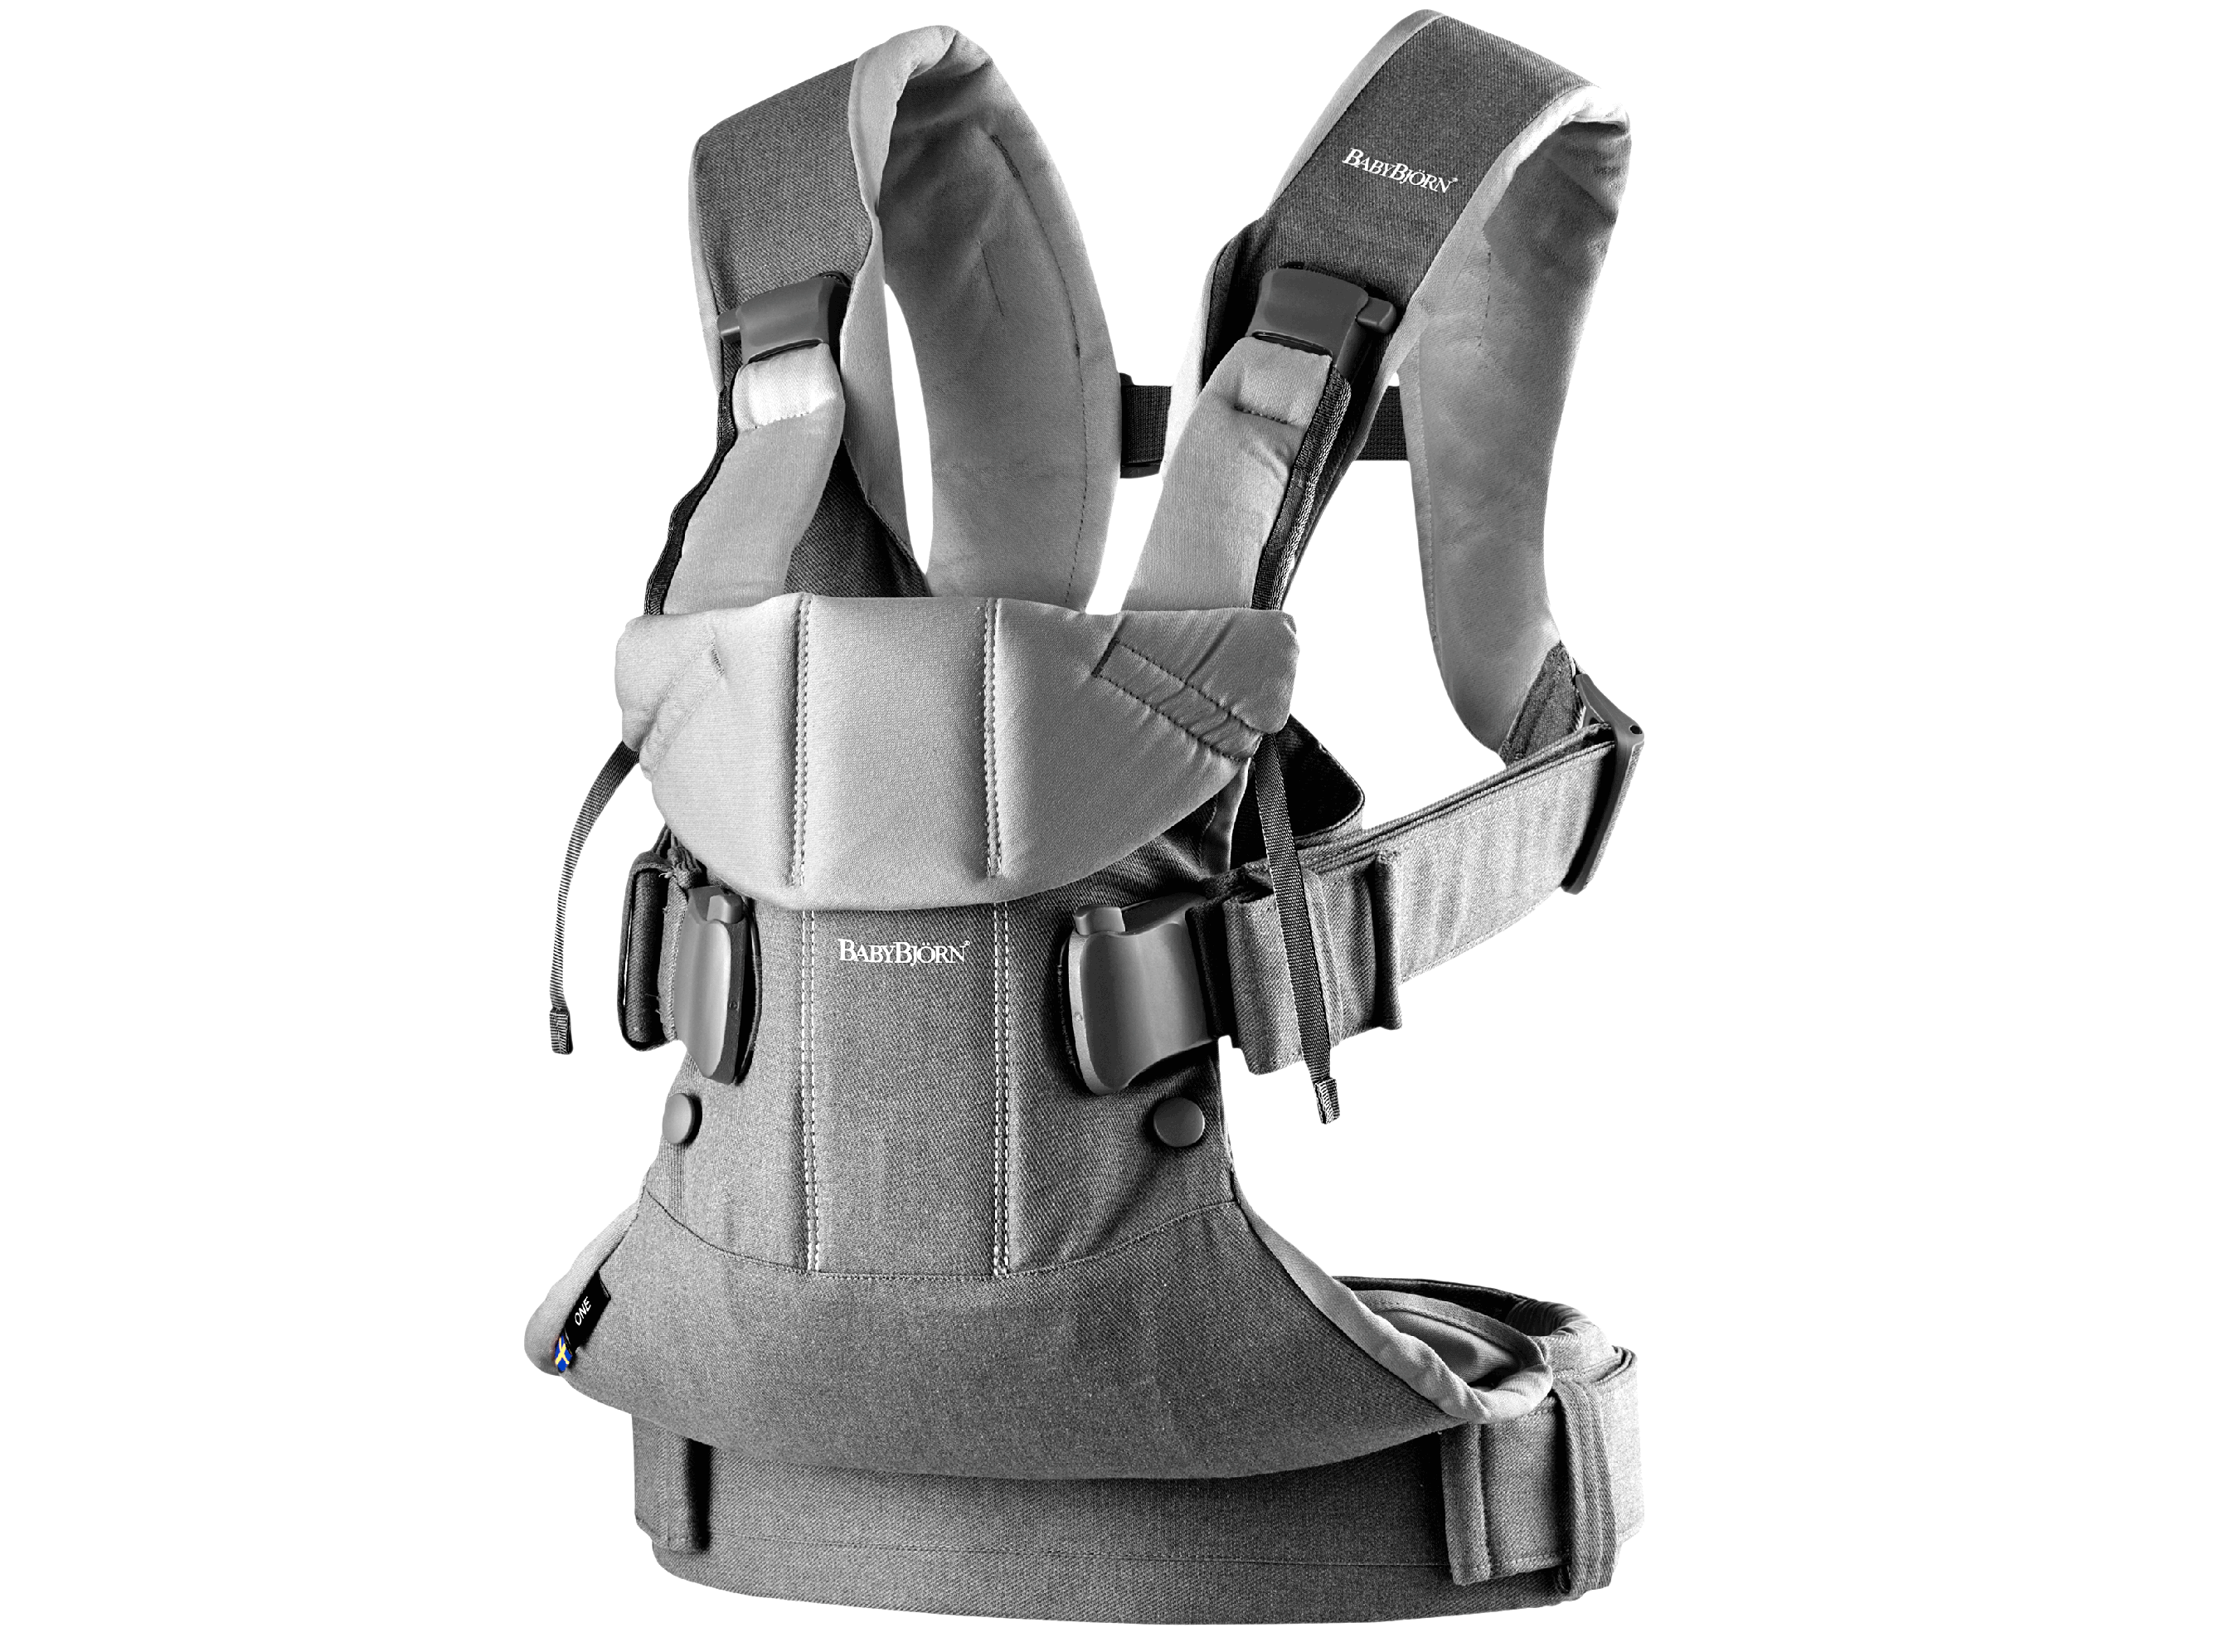 Baby Carrier One in gray denim and dark gray cotton mix, an ergonomic, soft and flexible baby carrier that can be used from new born to 3 years old, including front facing and back carrying.